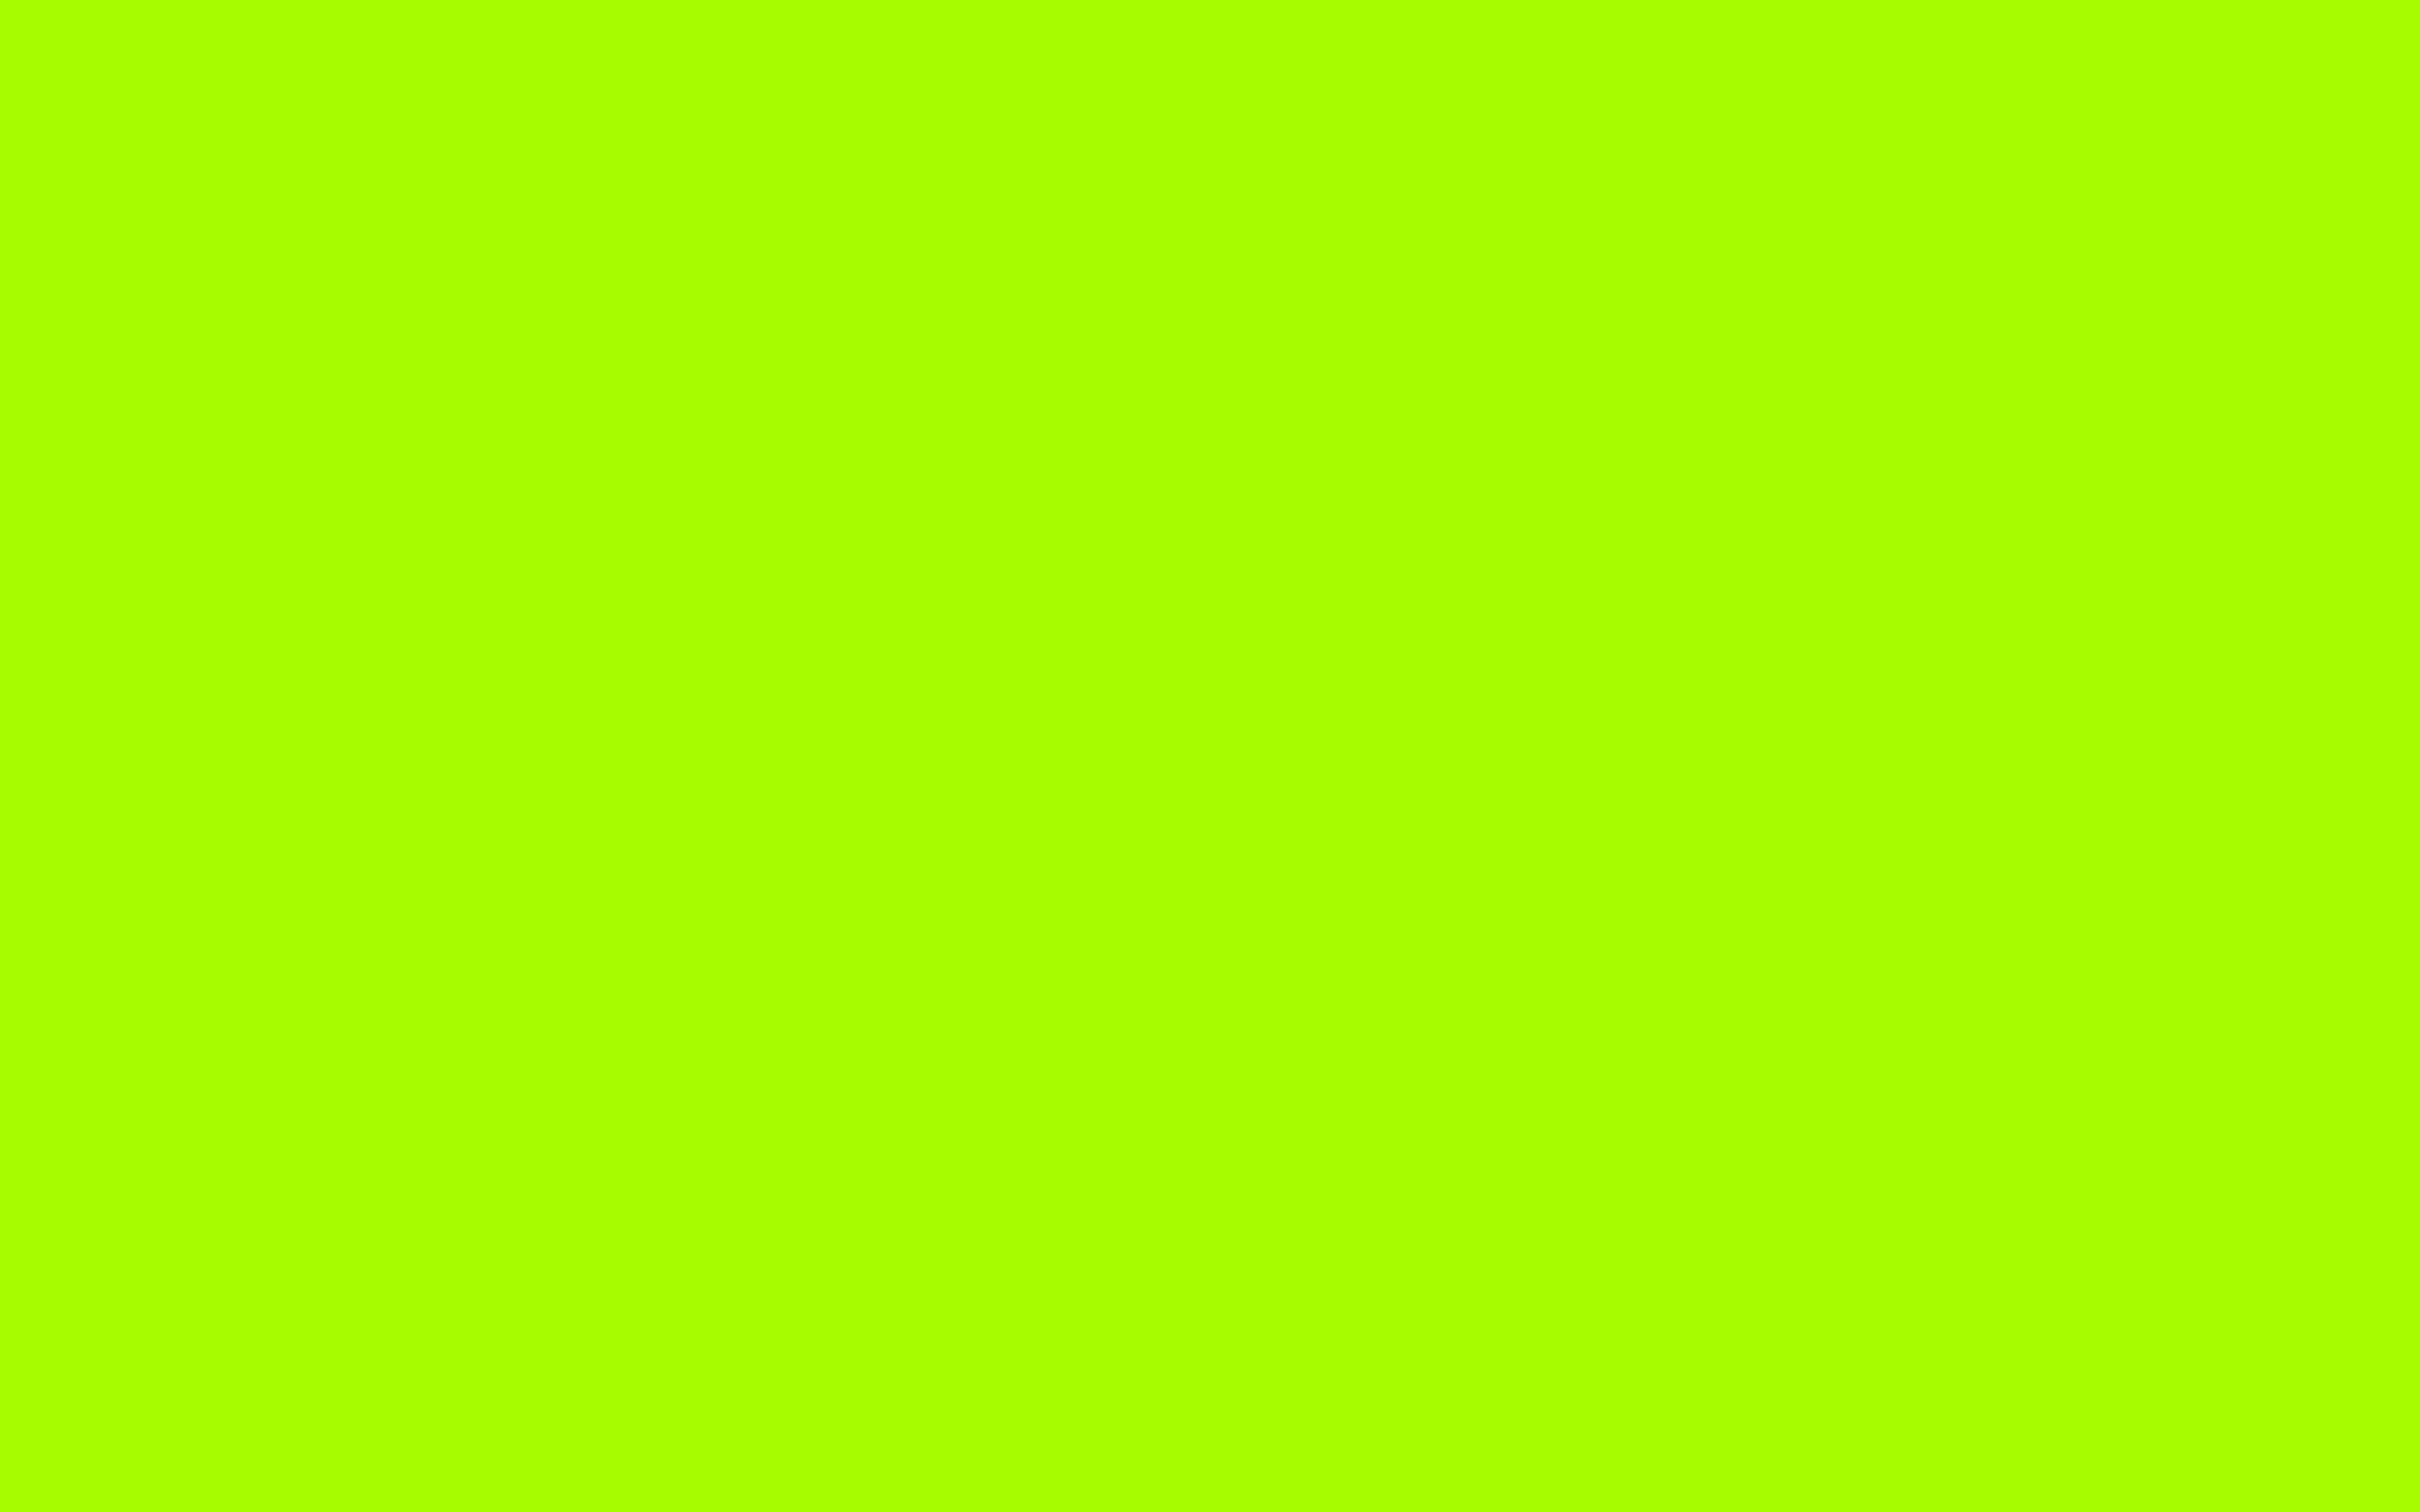 2560x1600 Spring Bud Solid Color Background